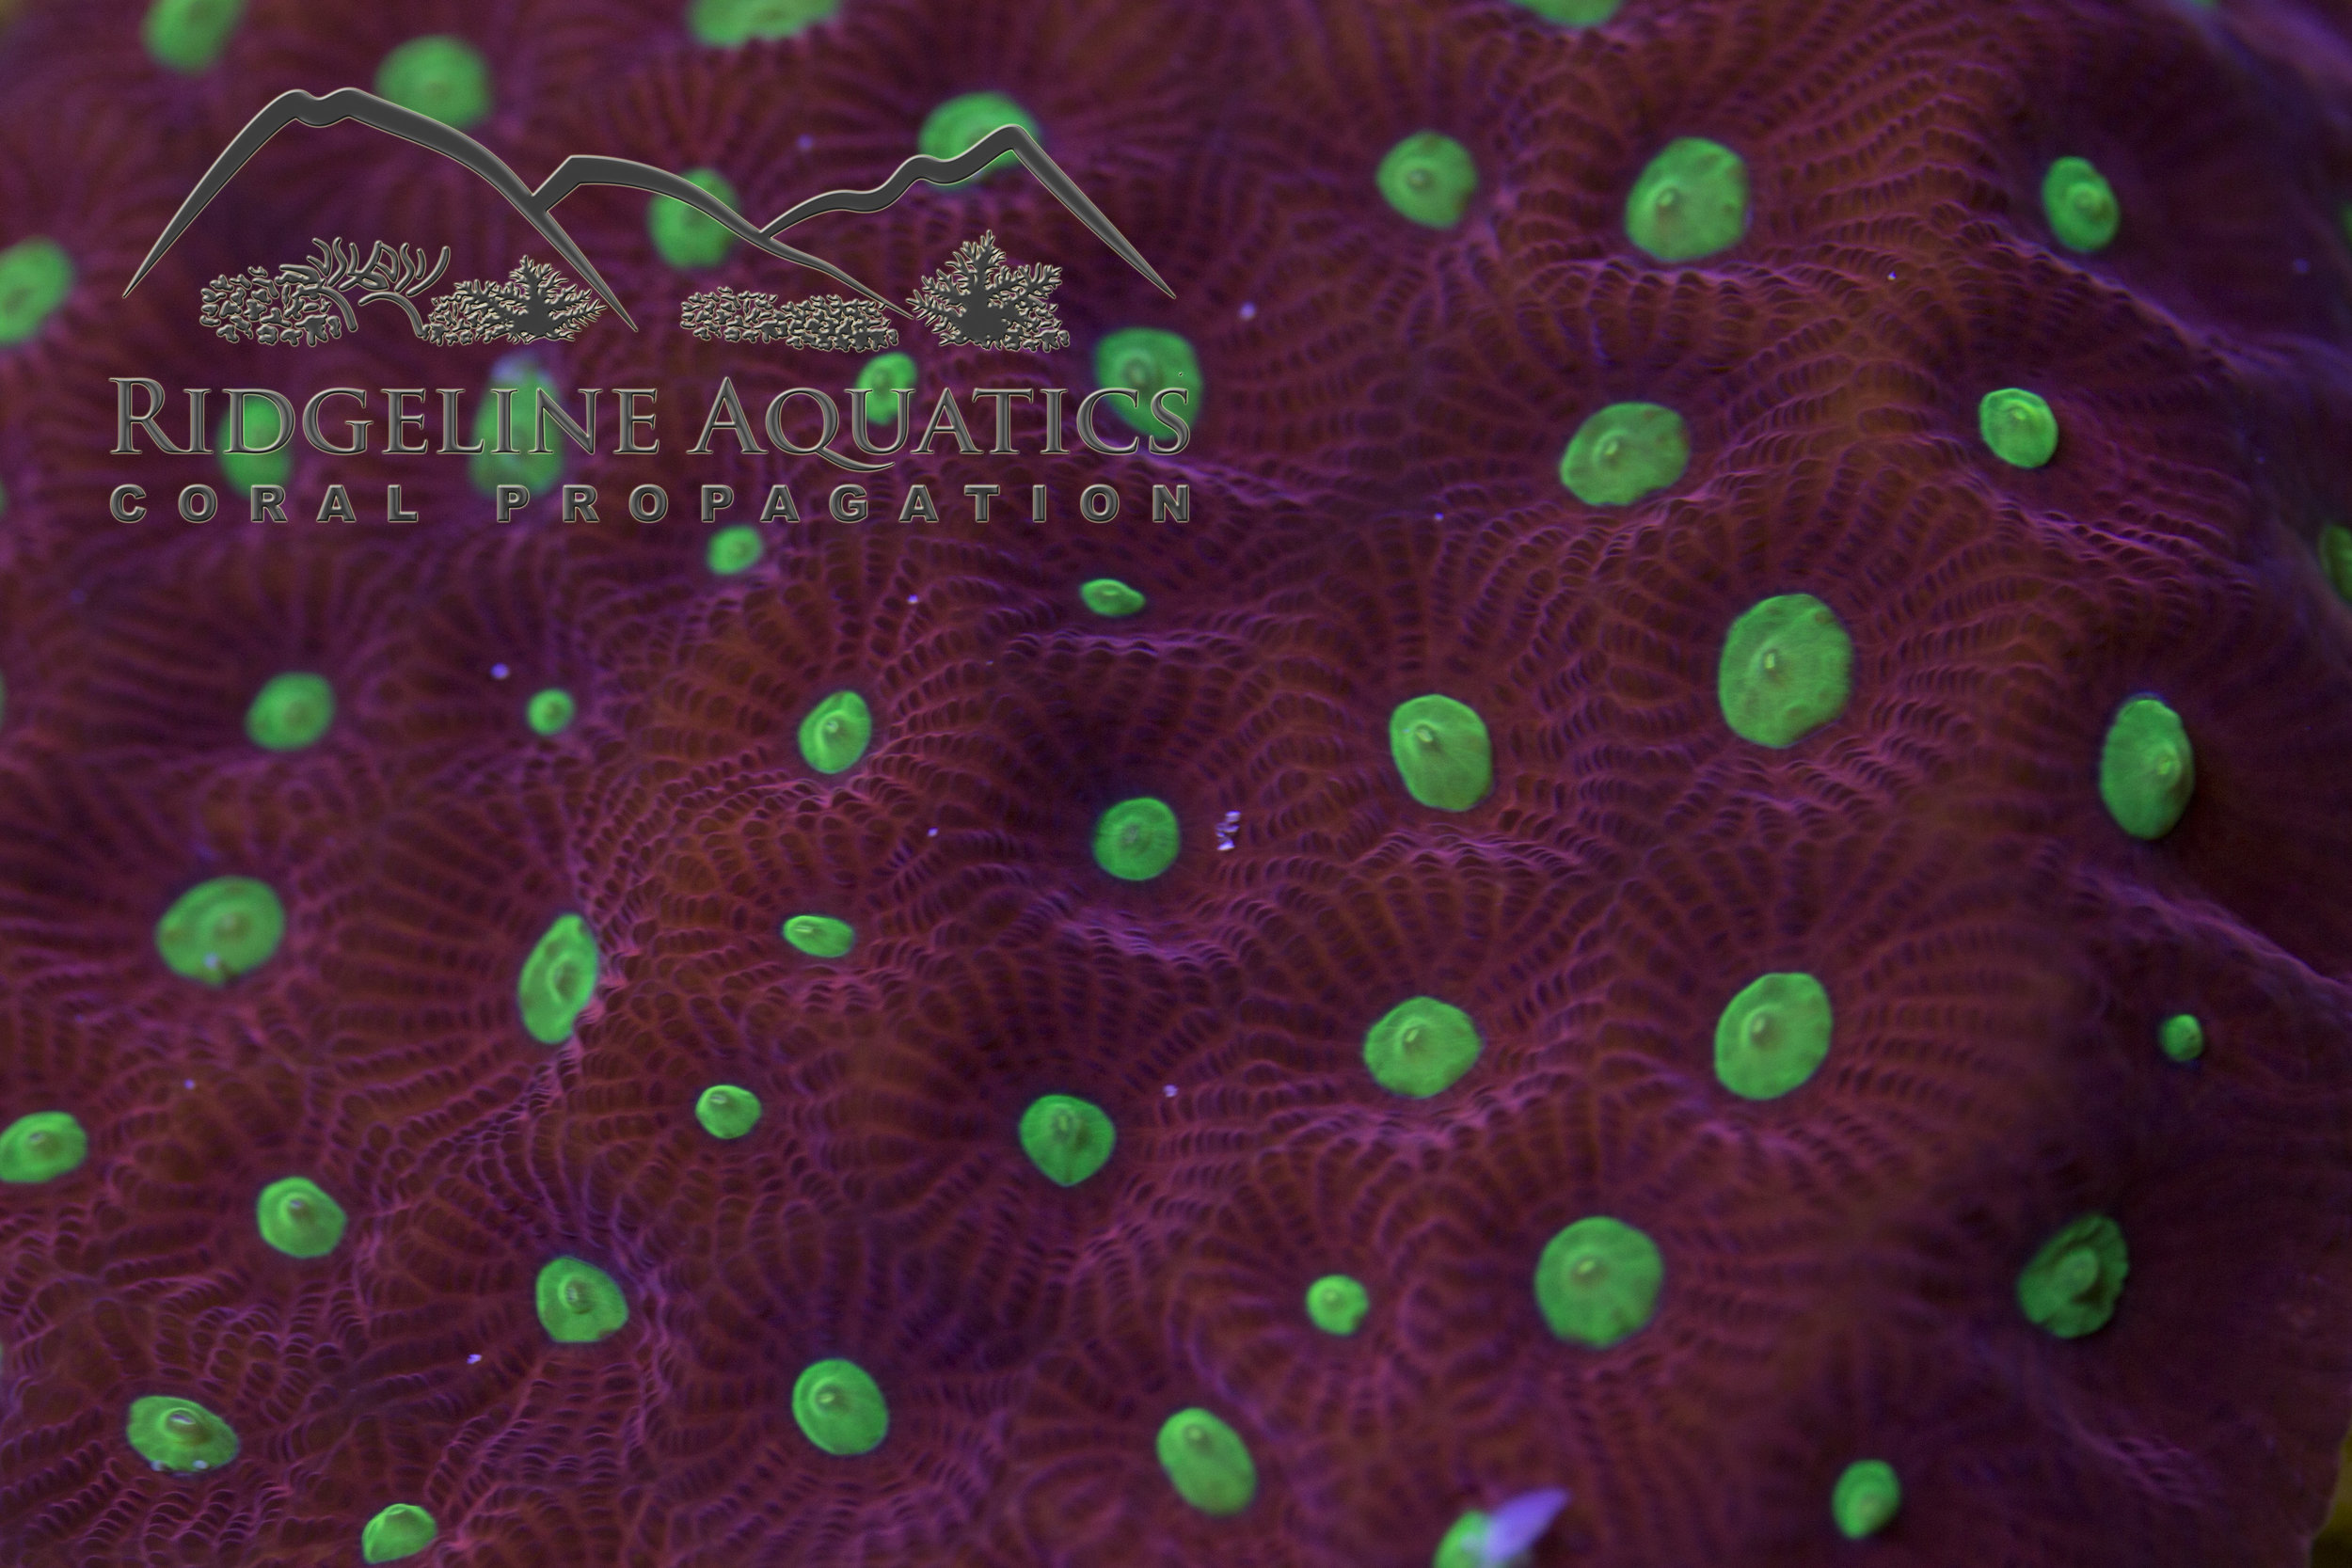 Favites Pentagonia aka the War Coral shows awesome contrast between the neon green mouths and deep red ridges.